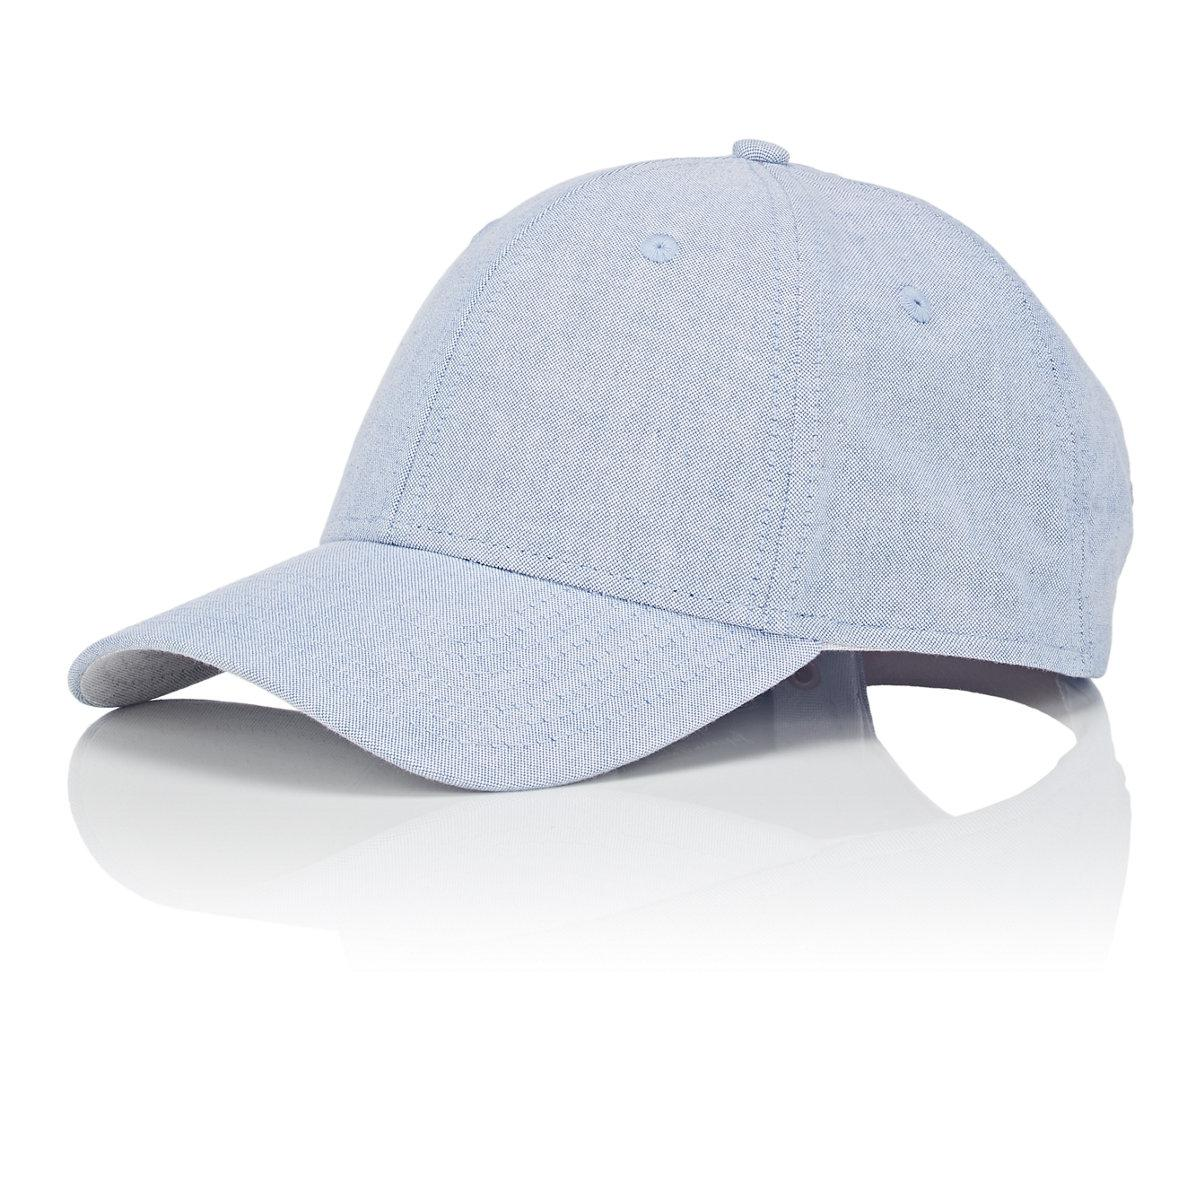 los angeles 98cfd 2a929 Barneys New York Cotton Oxford Cloth Baseball Cap in Blue for Men - Lyst